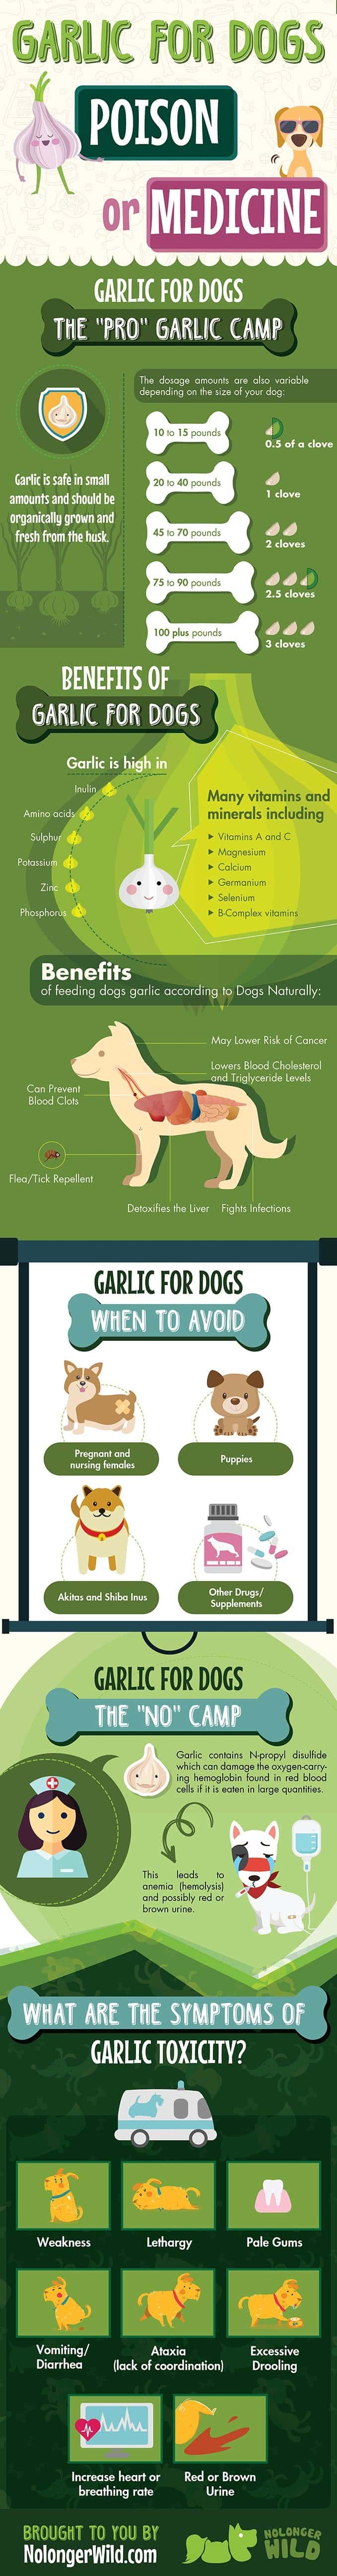 Garlic-for-Dogs-infographic